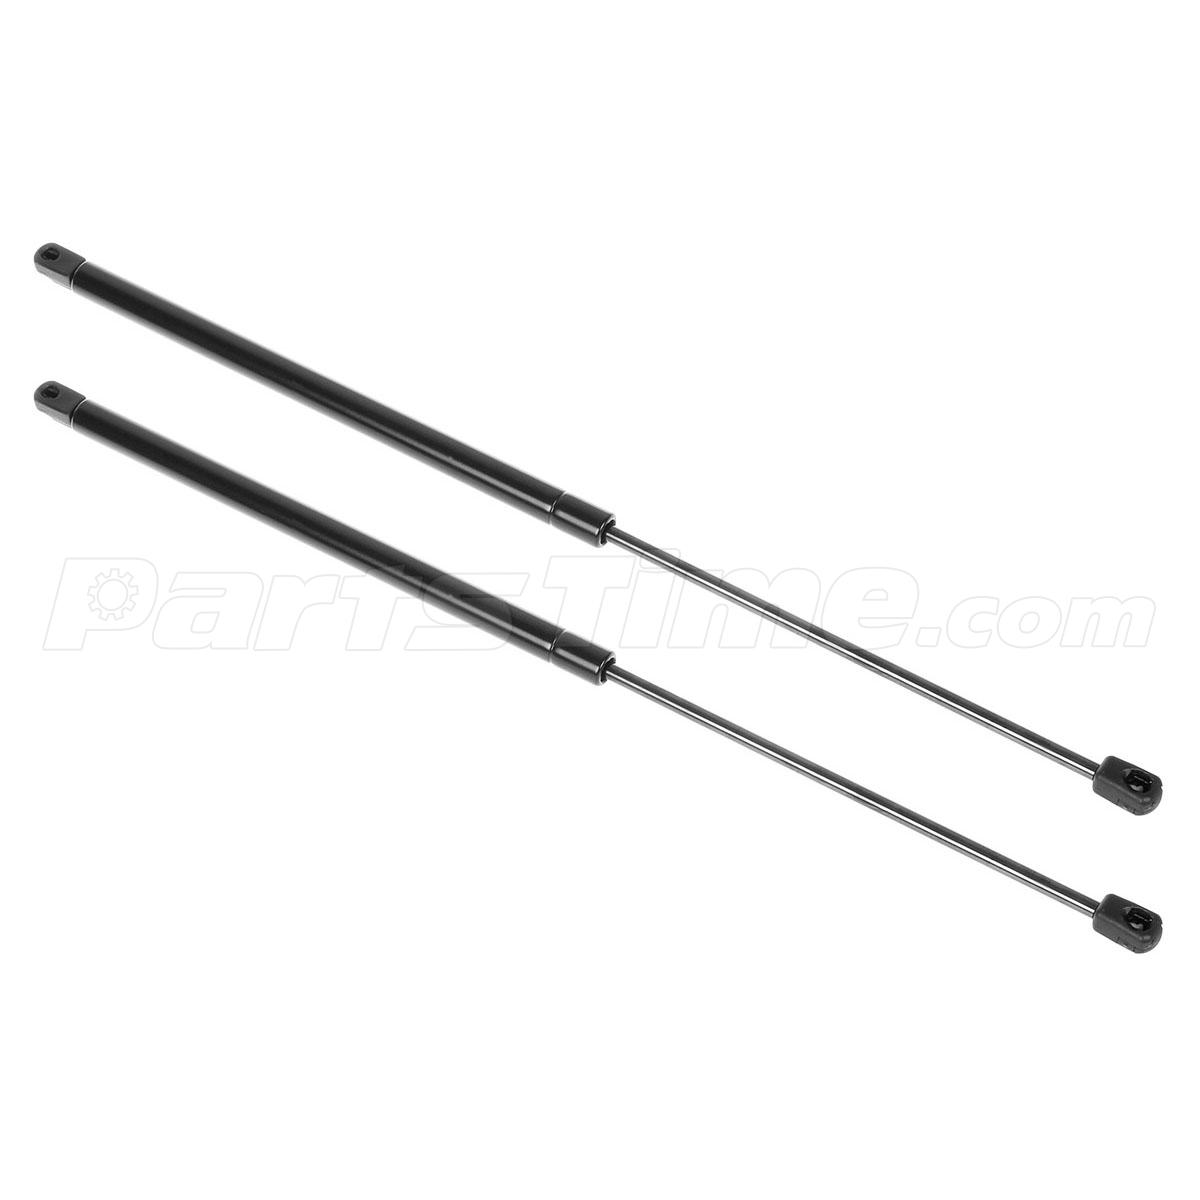 2X Front Hood Auto Gas Spring Prop Lift Support For 2000